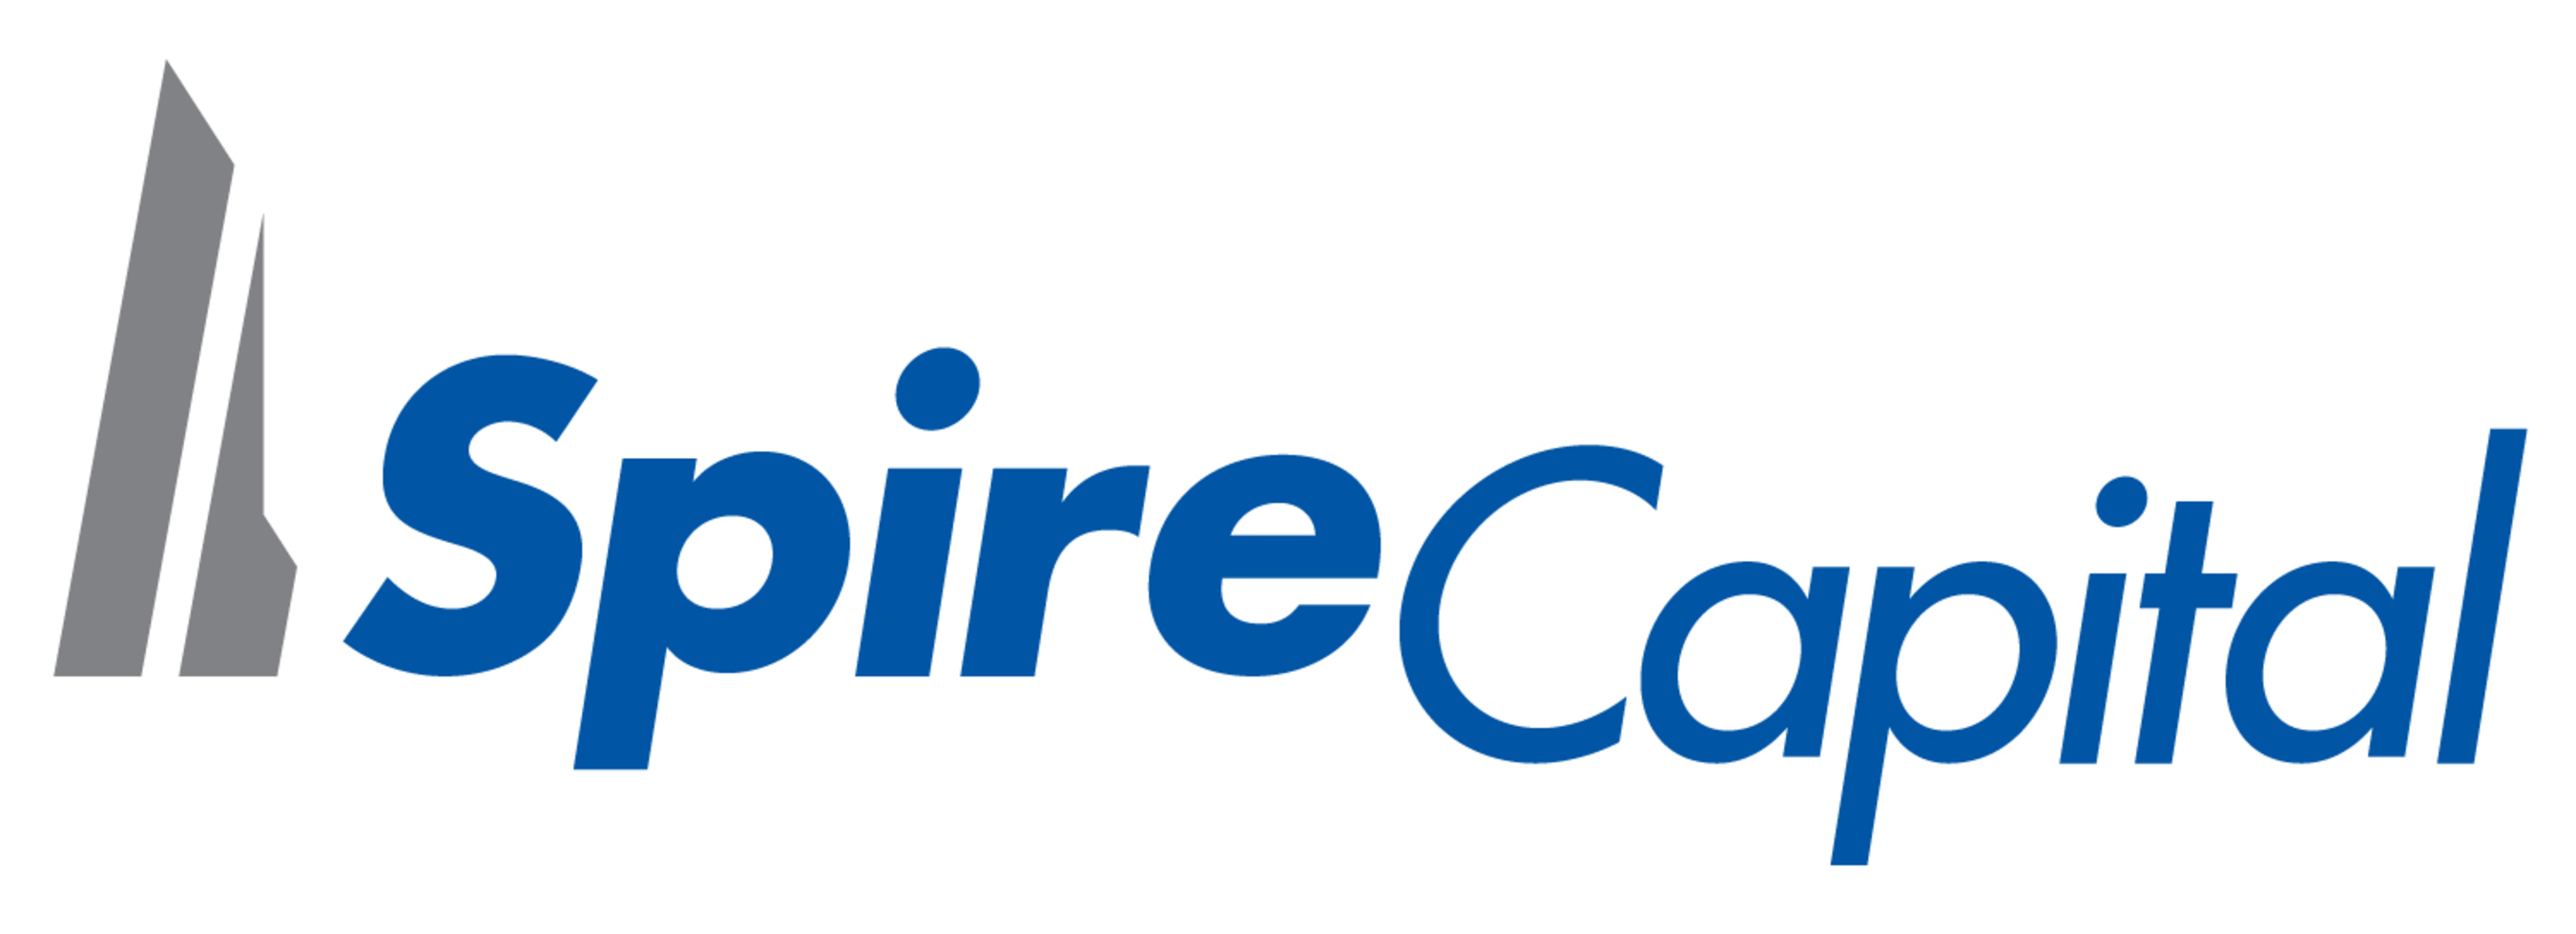 Spire Capital partners with Management to purchase On Campus Marketing